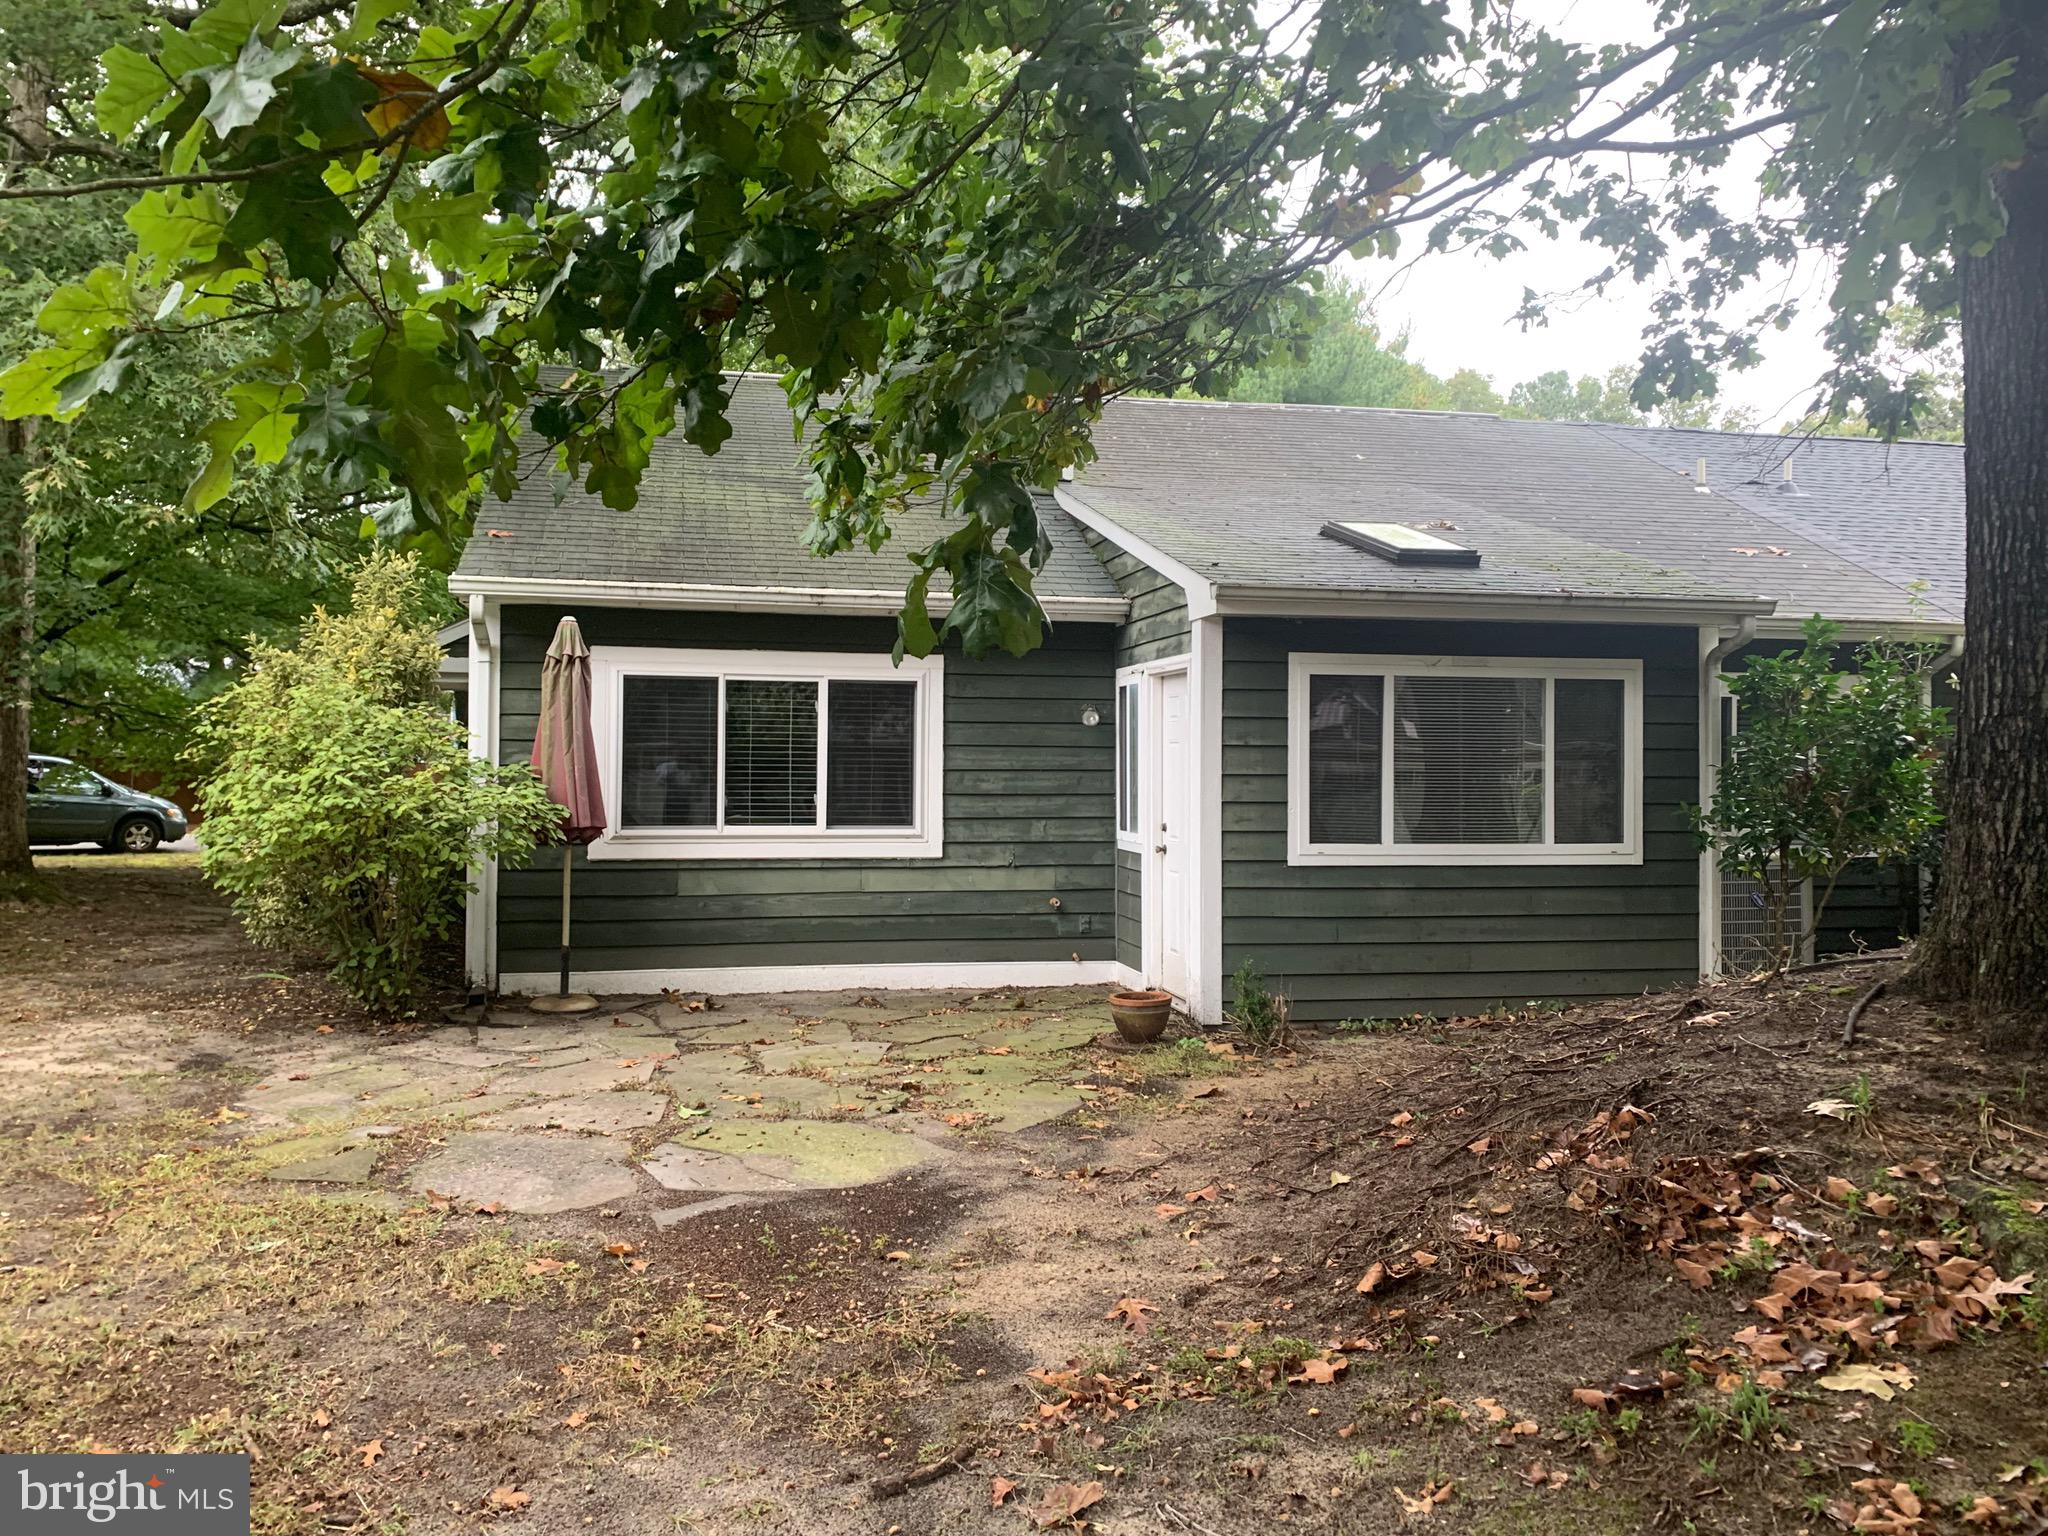 2 bed 2 bath with den-office-sunroom. Single level with attached garage.  Great starter or downsizer.  Was last tenant occupied. Includes all appliances. Great location near park, zoo and Ward Museum.